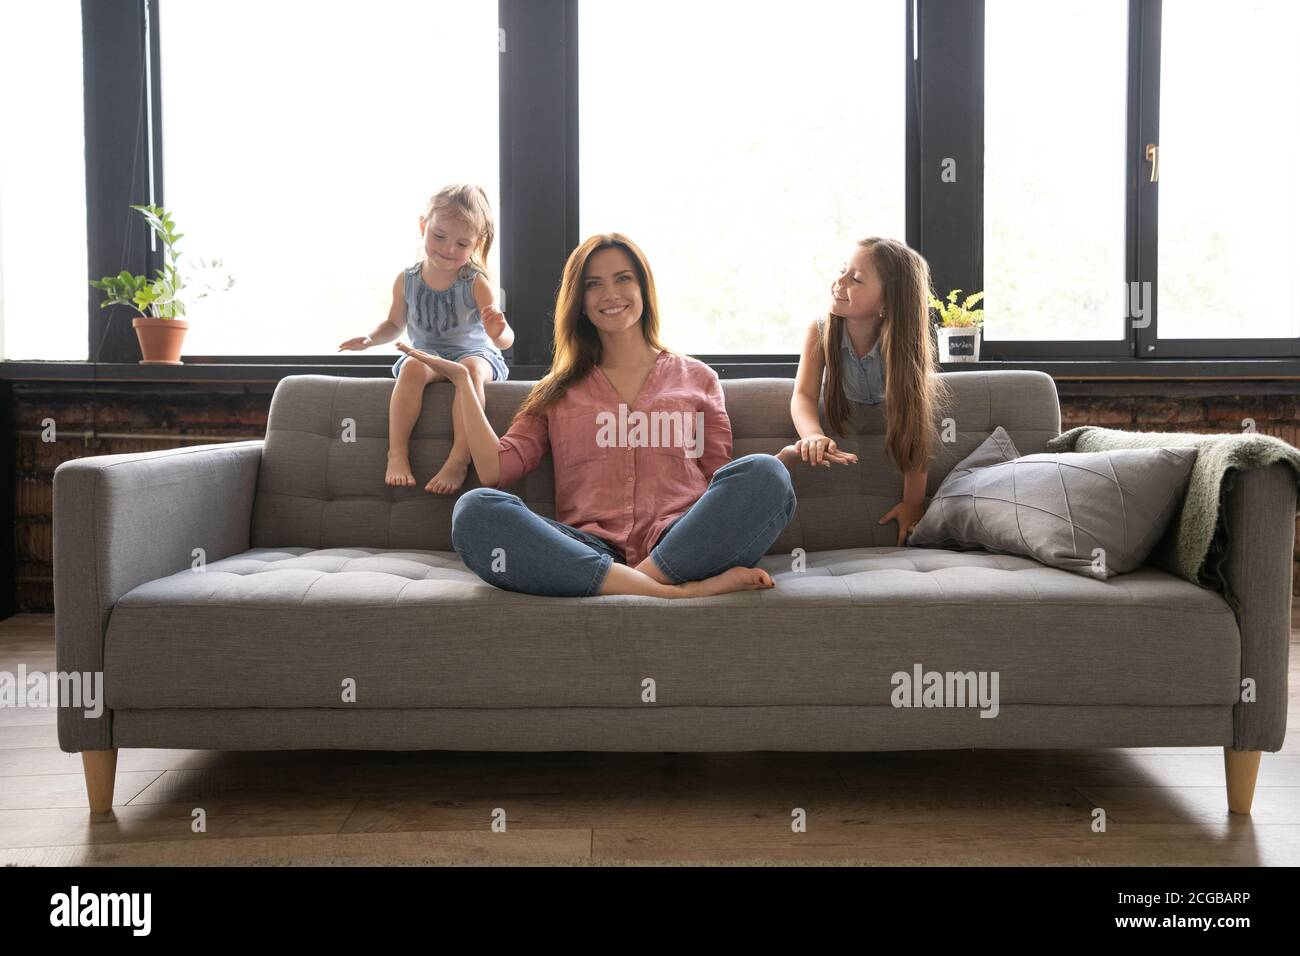 Calm woman concentrating on yoga exercises on couch at home while two noisy kids laughing, running Stock Photo